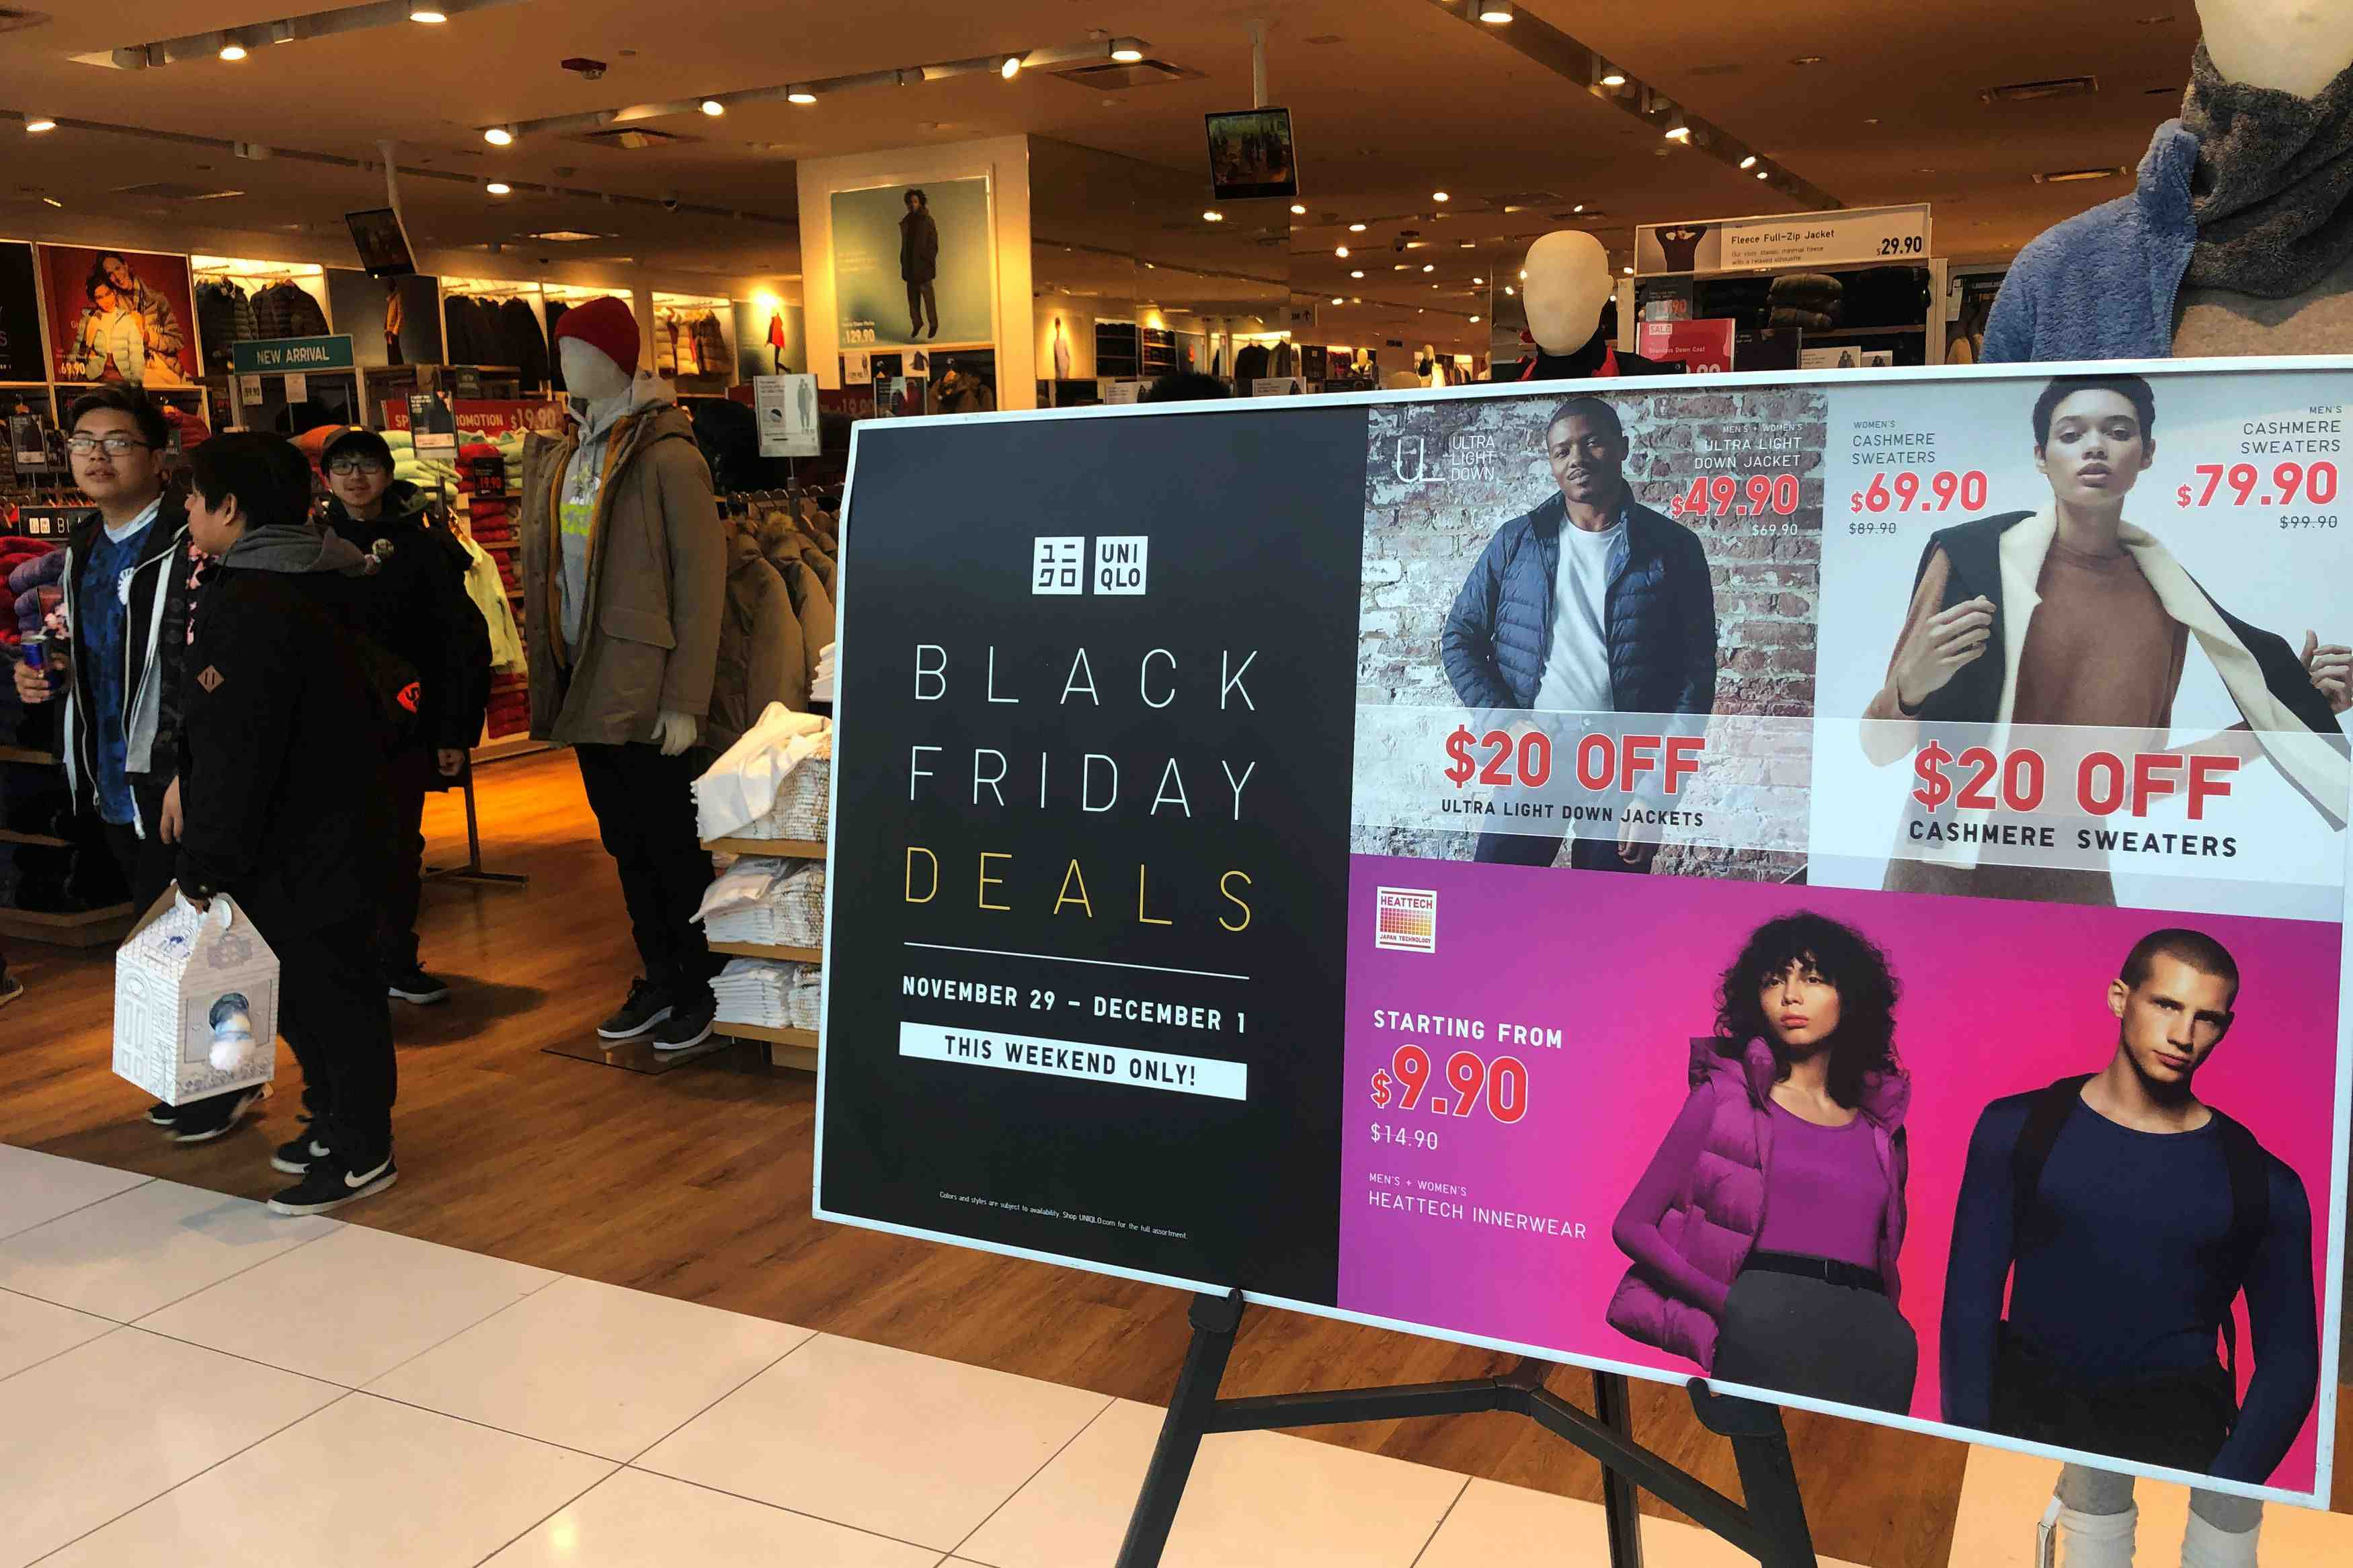 People shop at the Uniqlo store during the Black Friday sales event at Roosevelt Field Mall in Garden City, New York